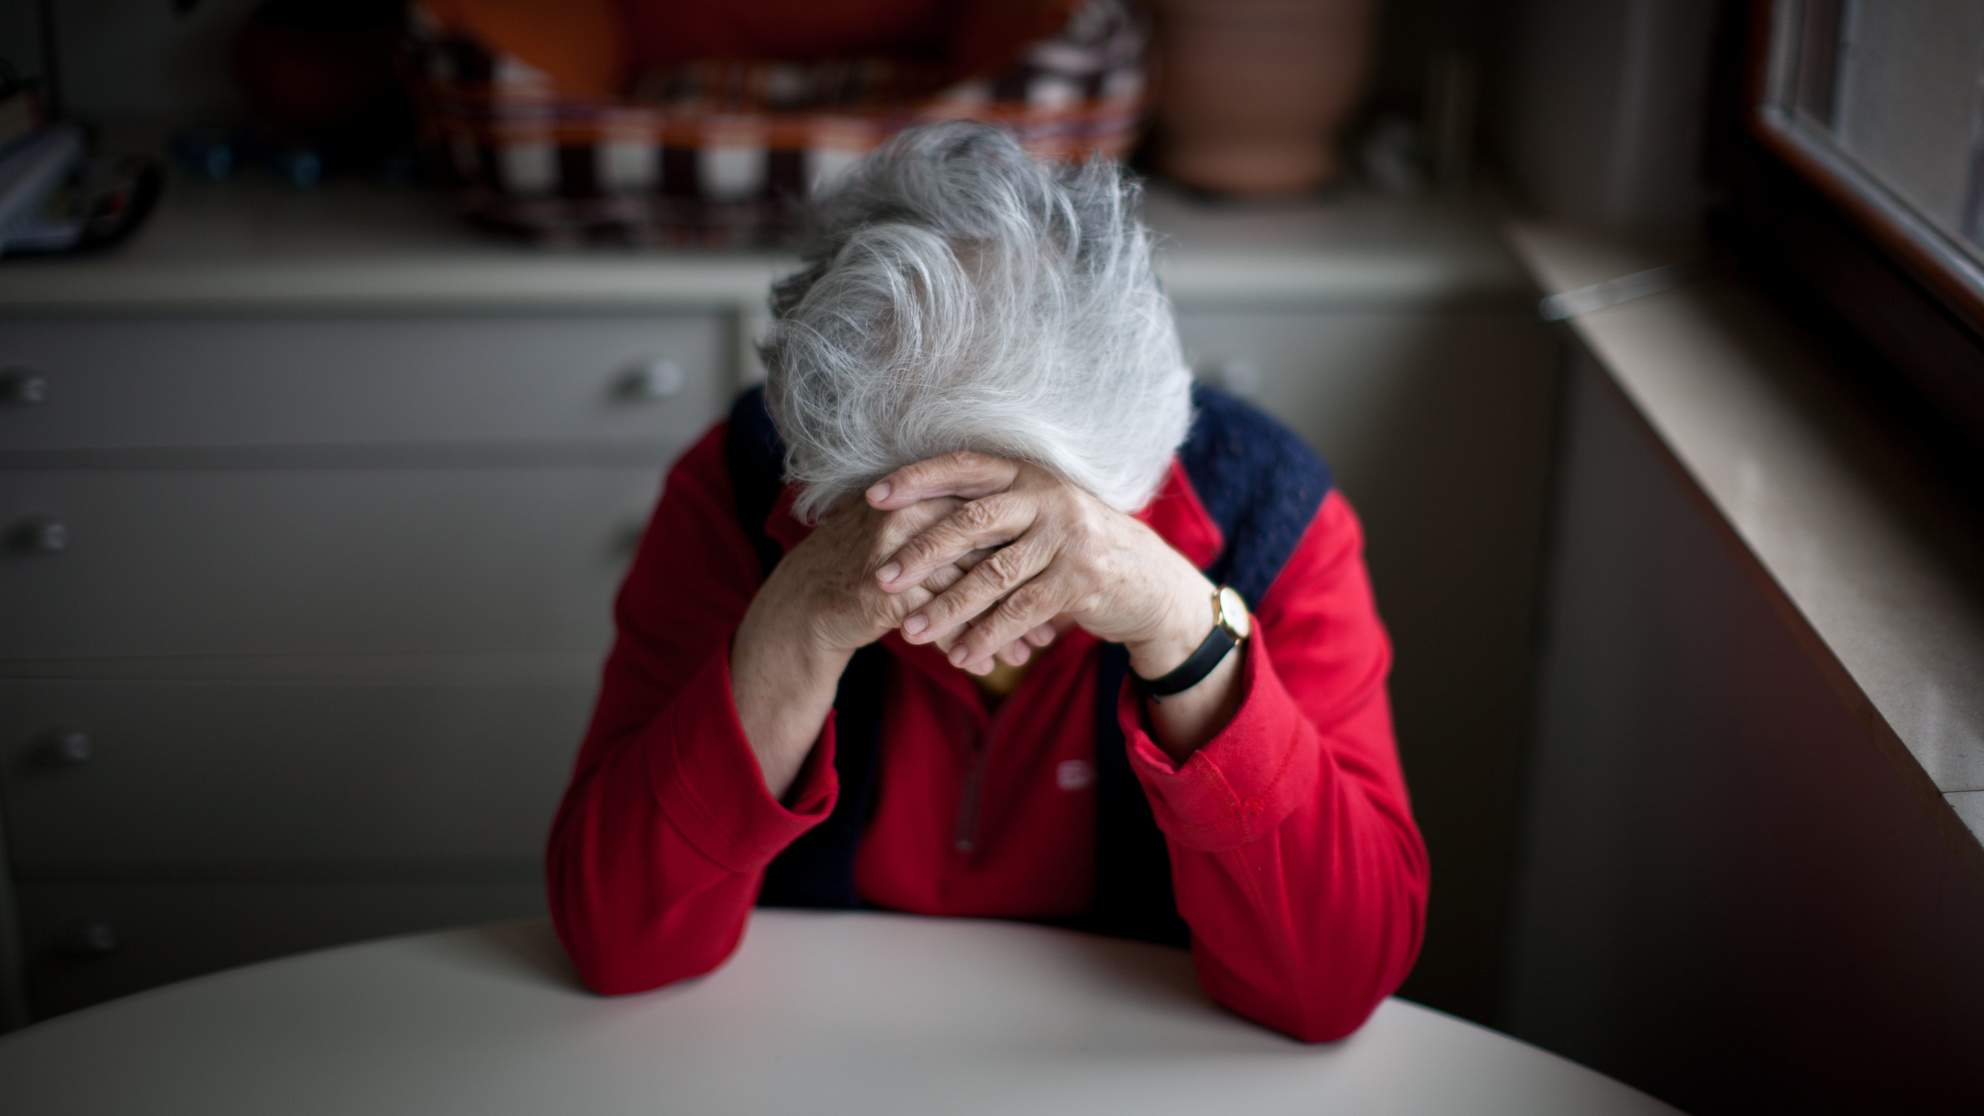 Anxiety & Depression in Old Age TIME health stock